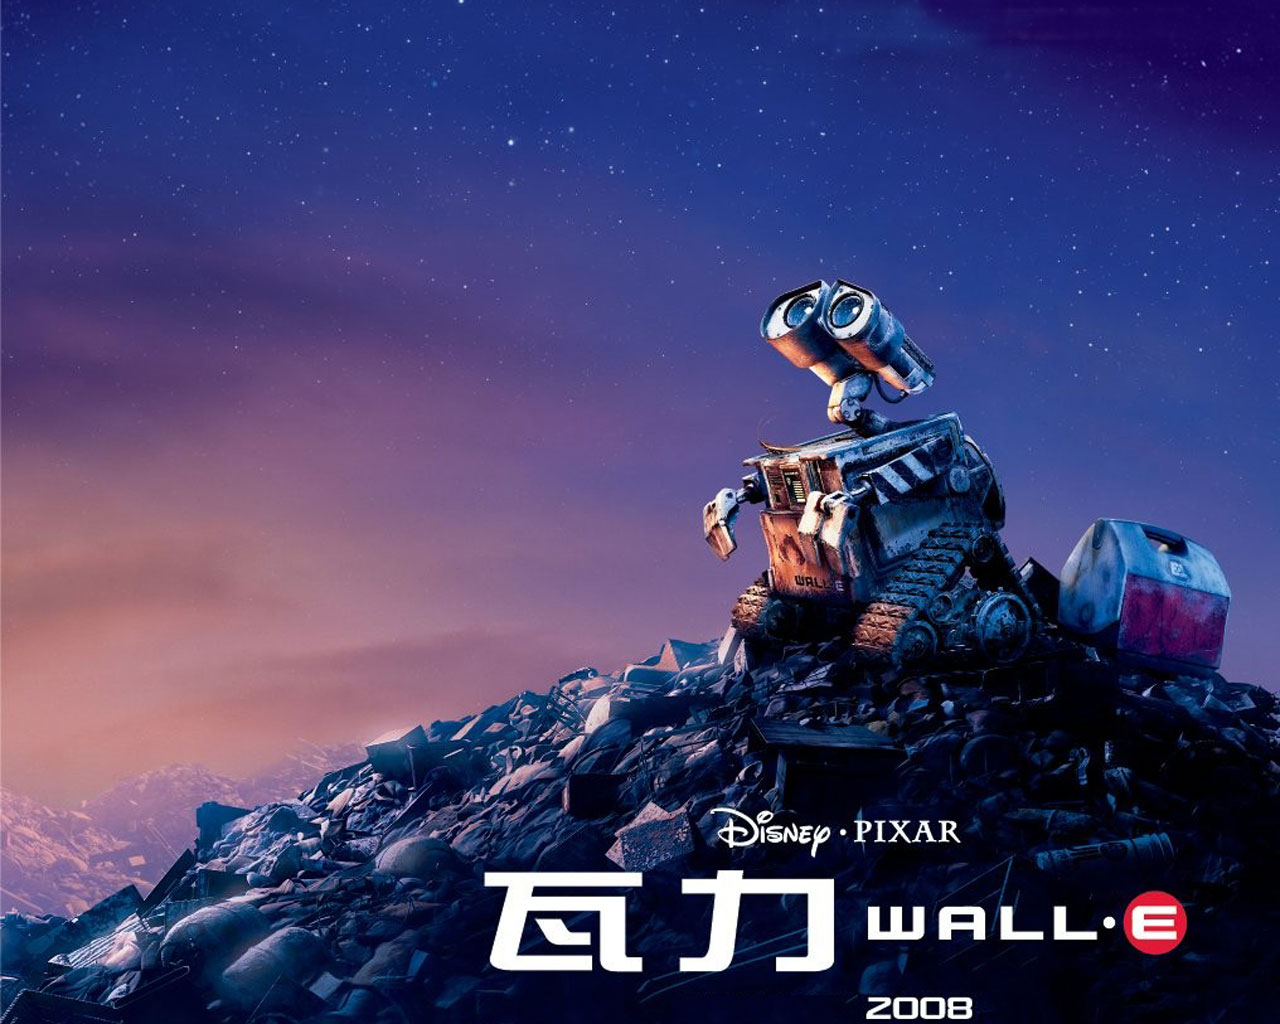 Wall-E on a wasted planet